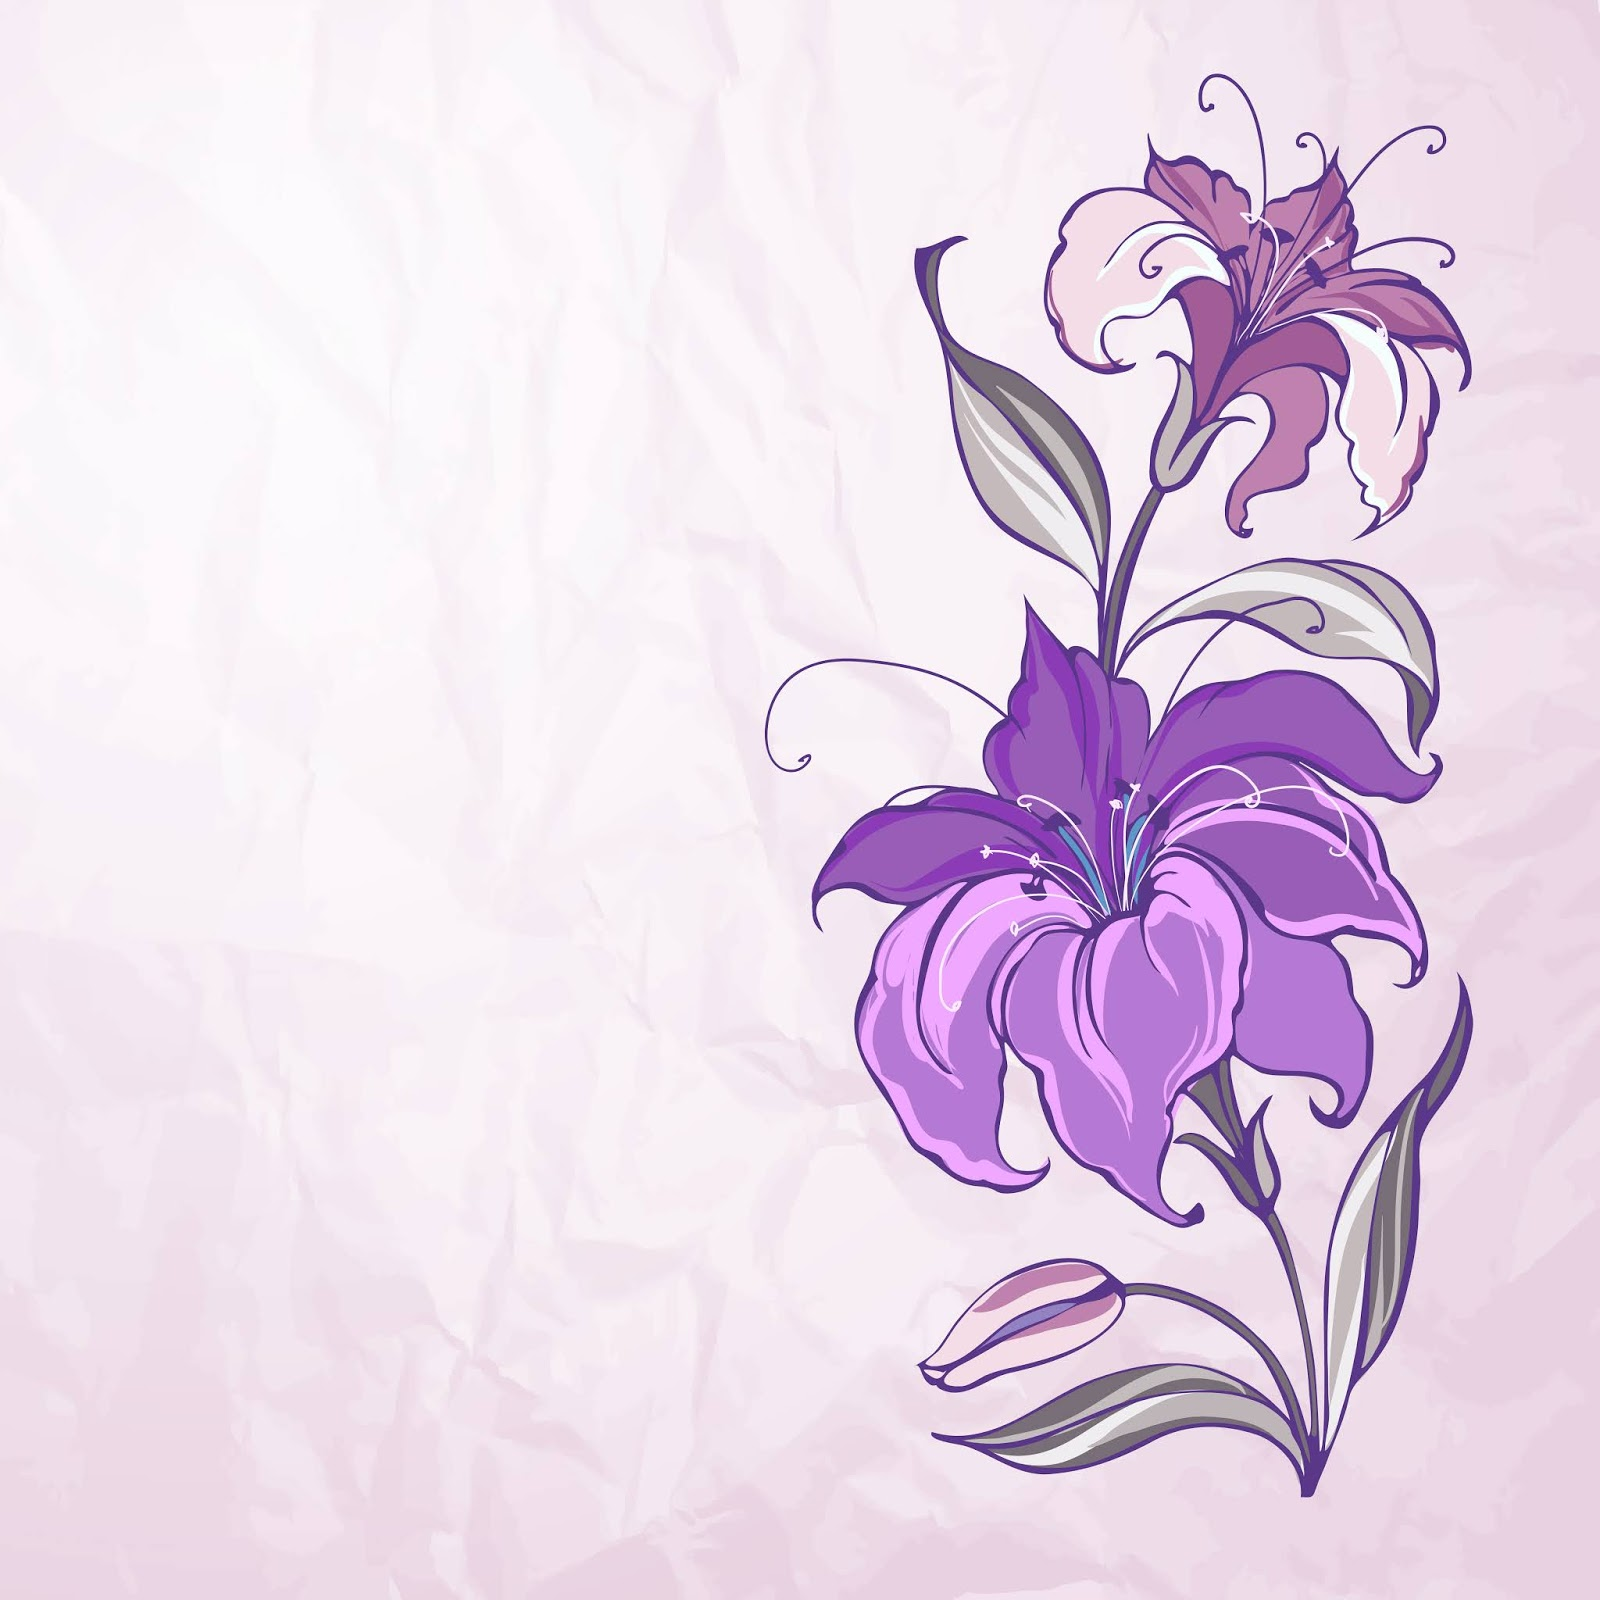 Abstract Background With Blooming Lilies Free Download Vector CDR, AI, EPS and PNG Formats